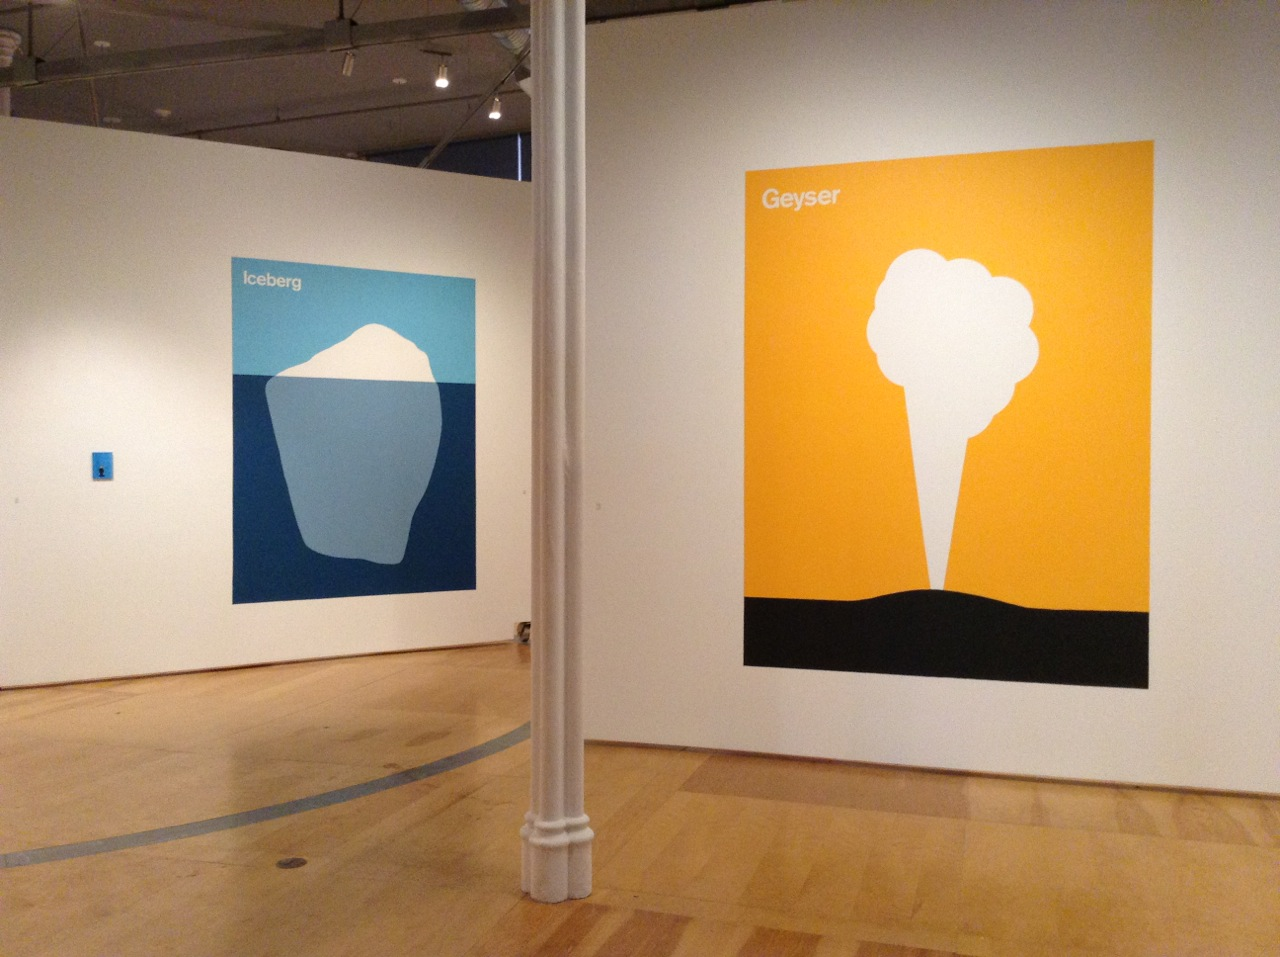 Julian Montague's large-scale wall pieces, 'Iceberg' and 'Geyser' are on view in Hallwalls Contemporary Arts Center's 'Amid/In Western New York Part 5.'